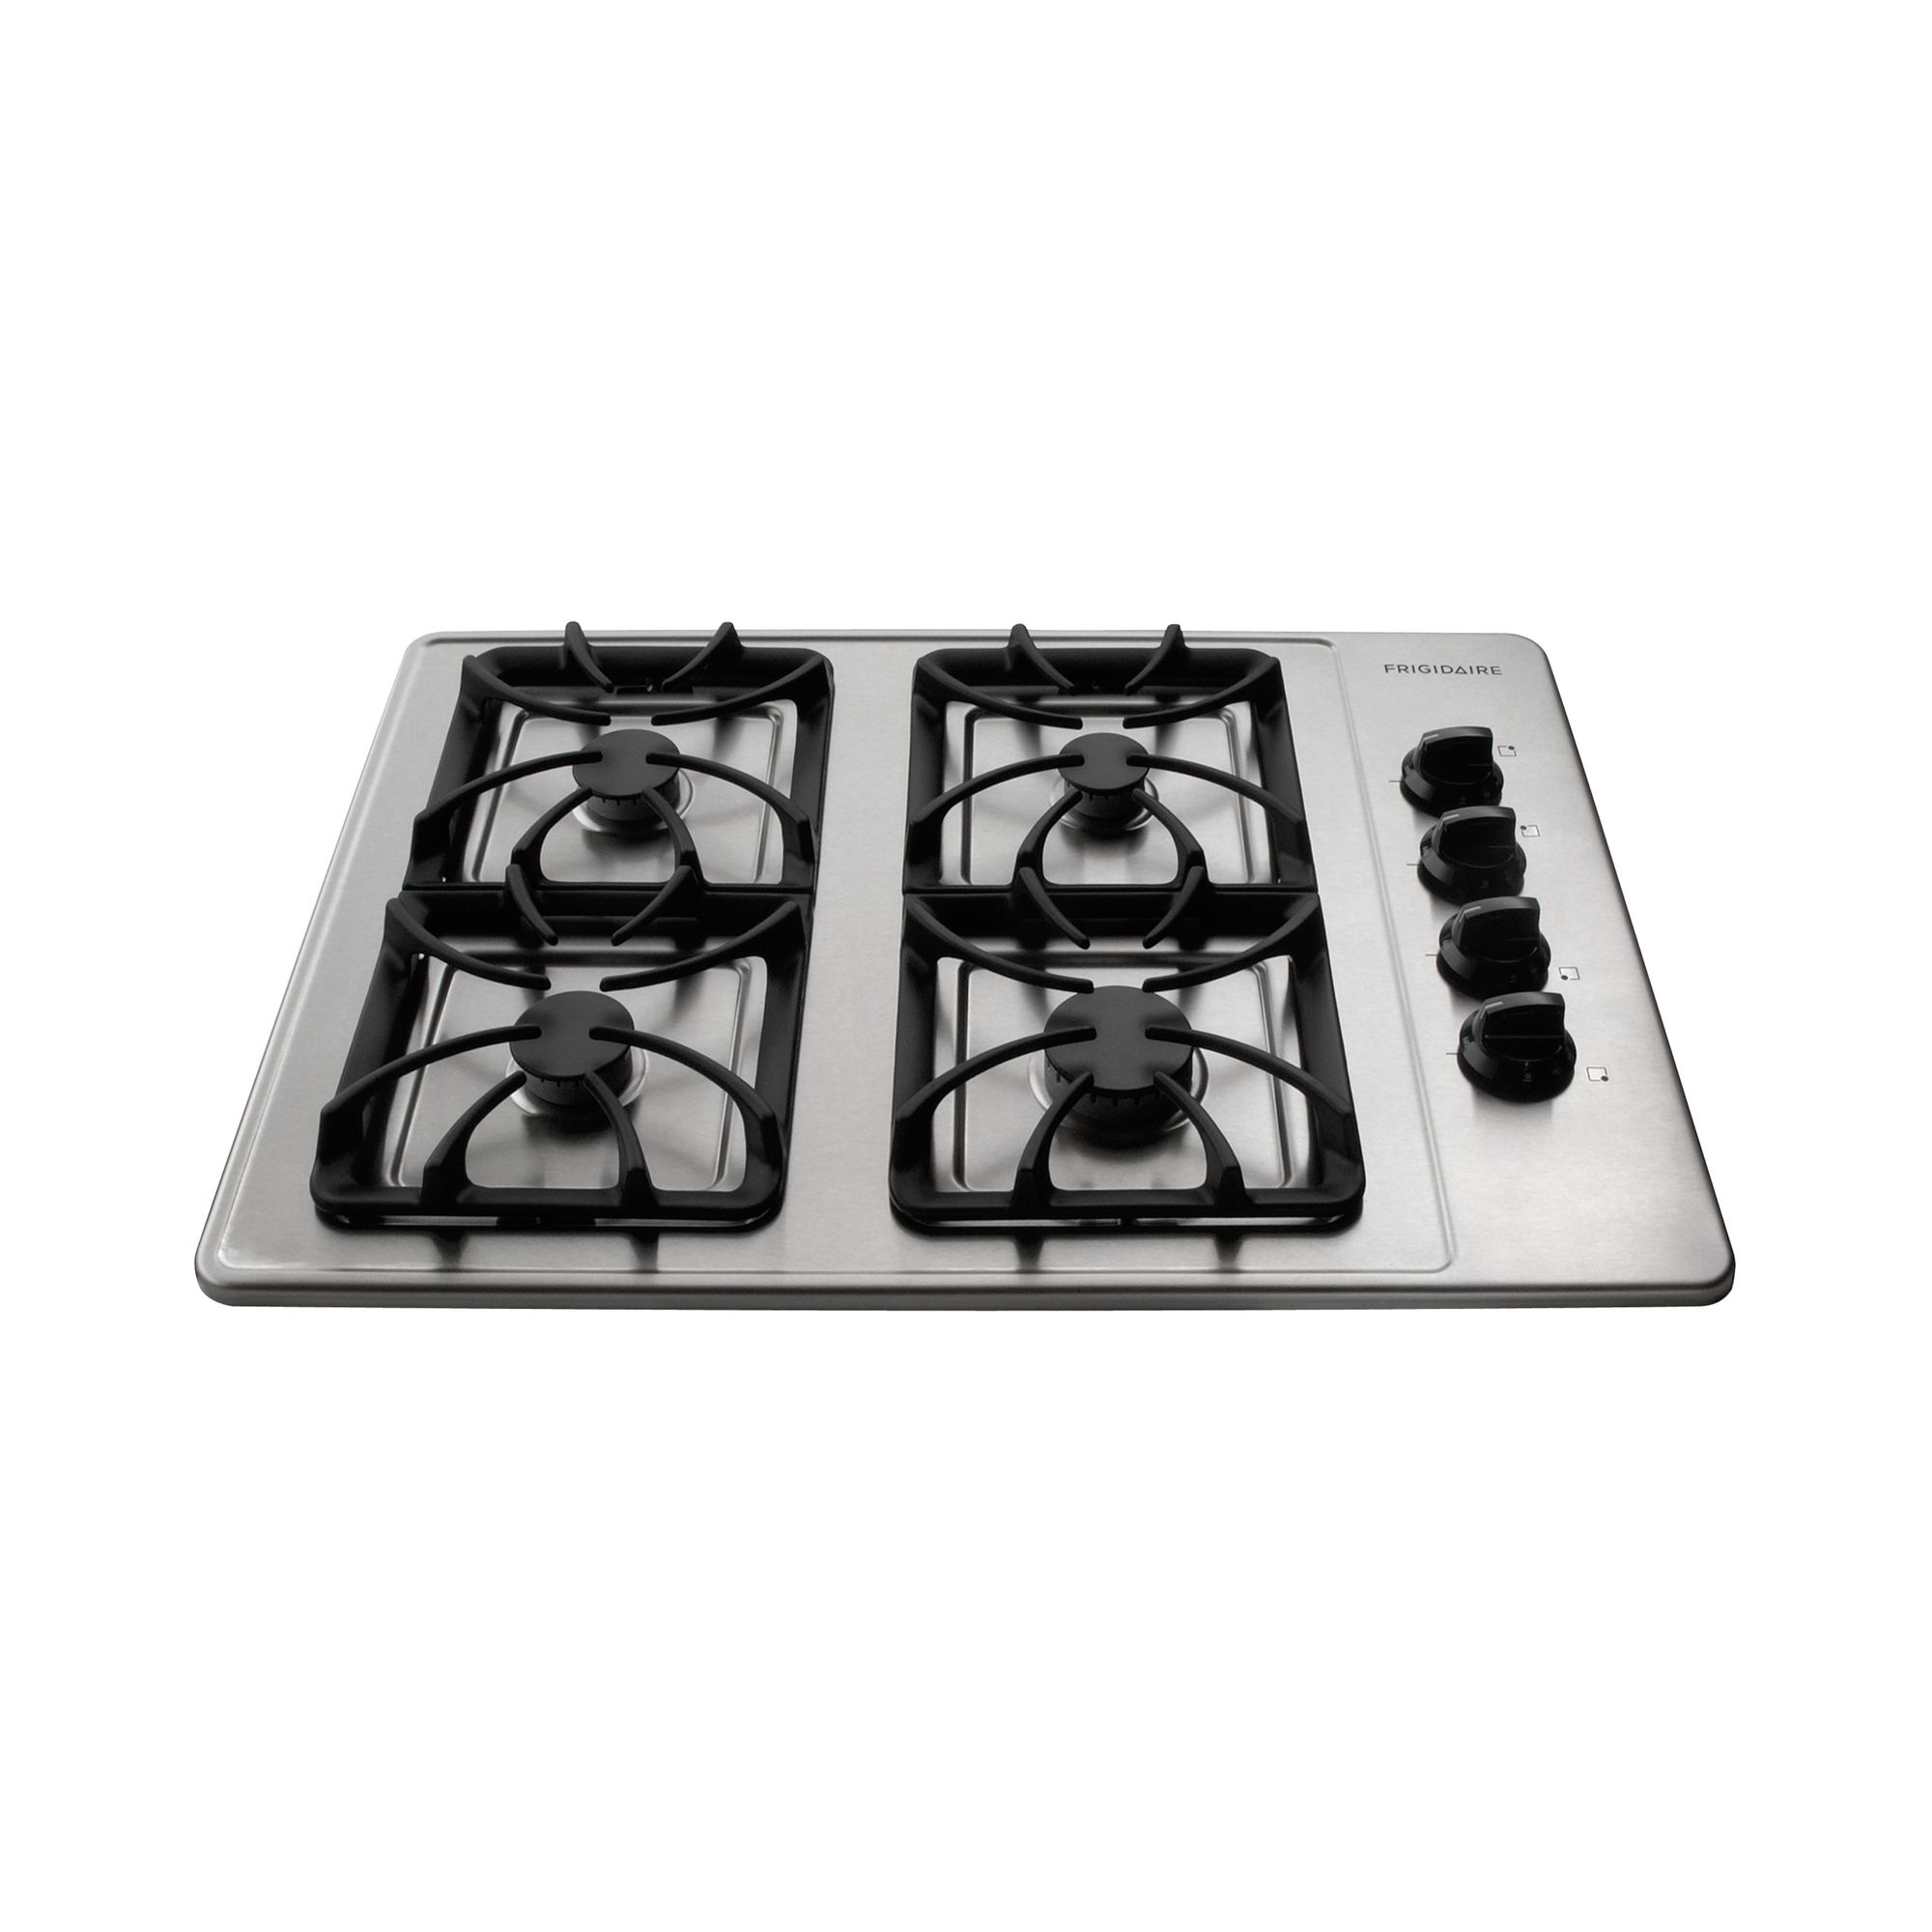 "Frigidaire 30"" Sealed Burner Gas Cooktop"